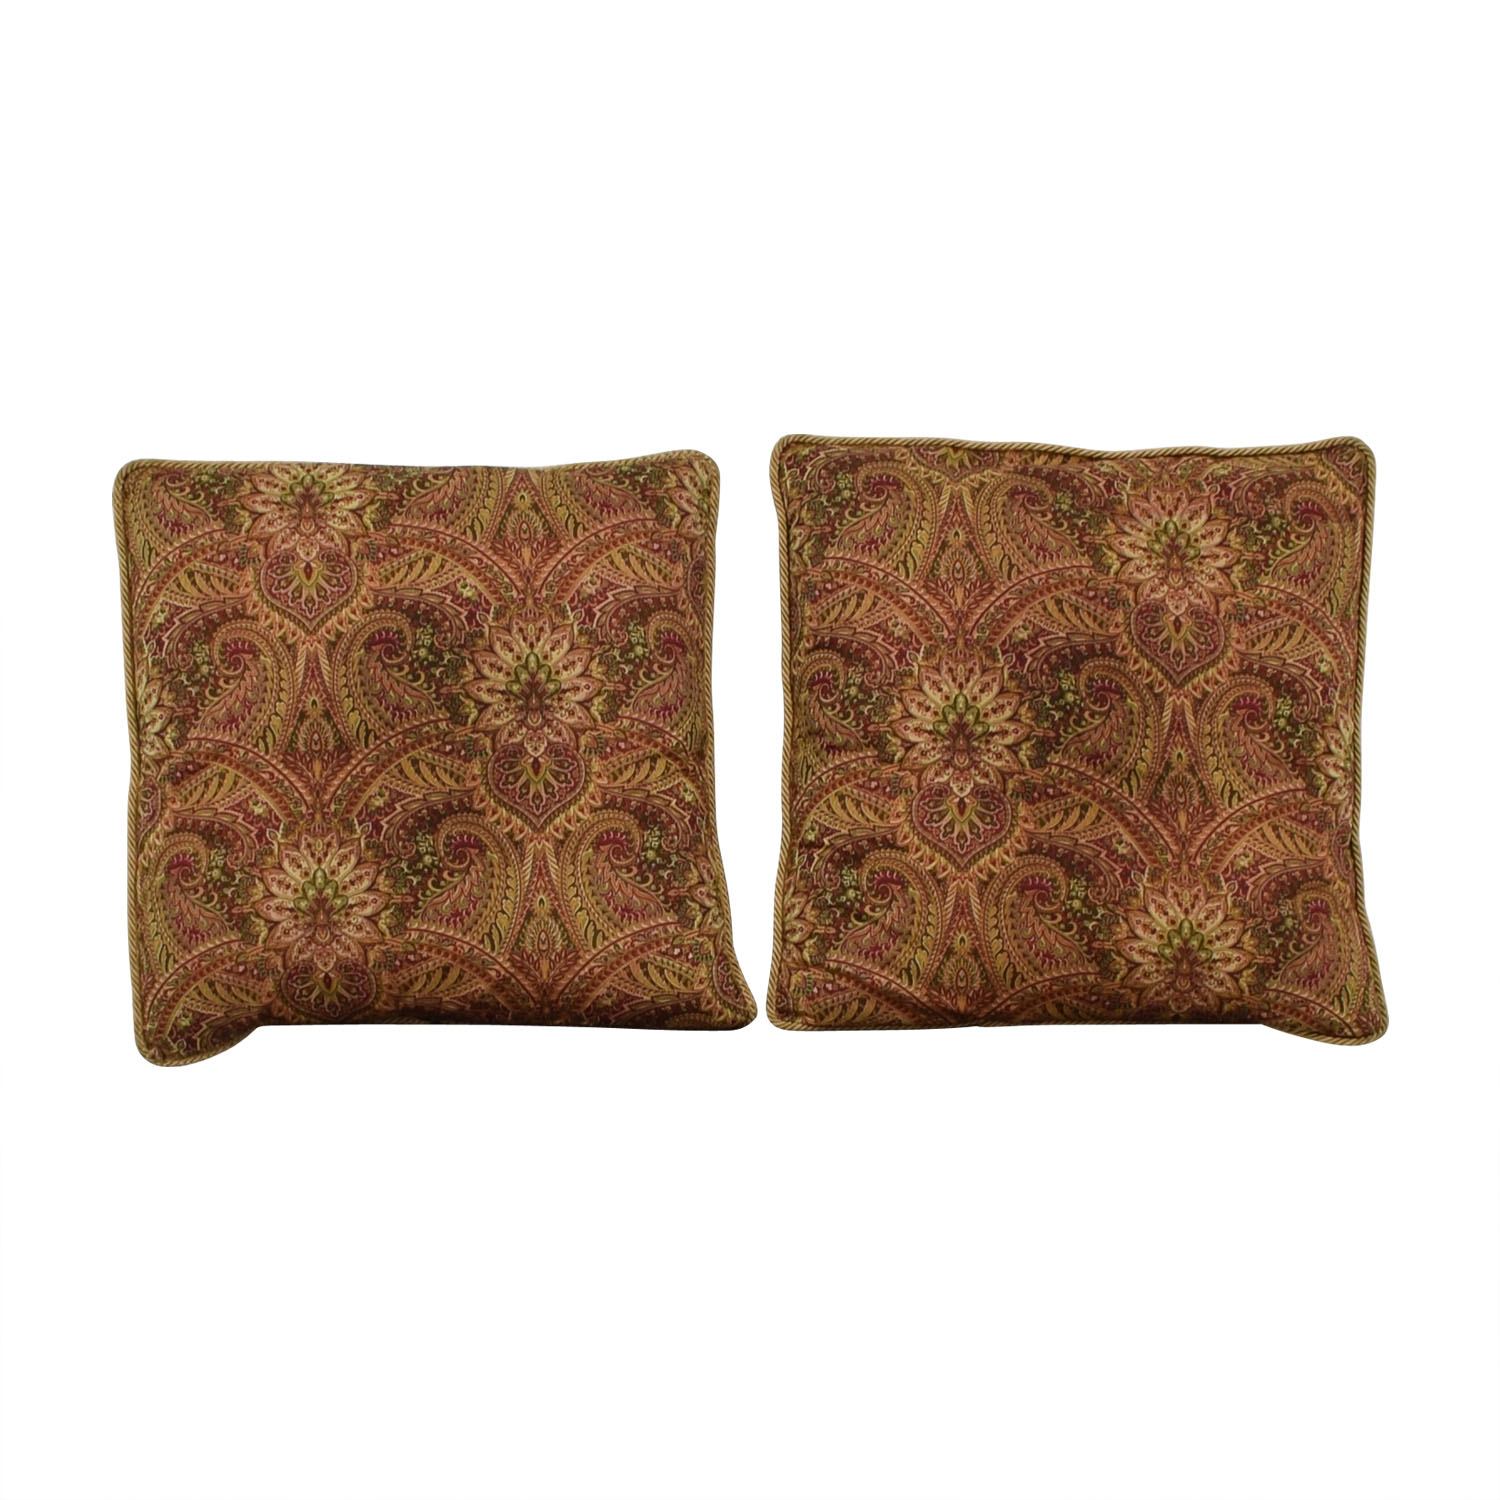 Paisley Floor Pillows with Gold Braid Trim dimensions